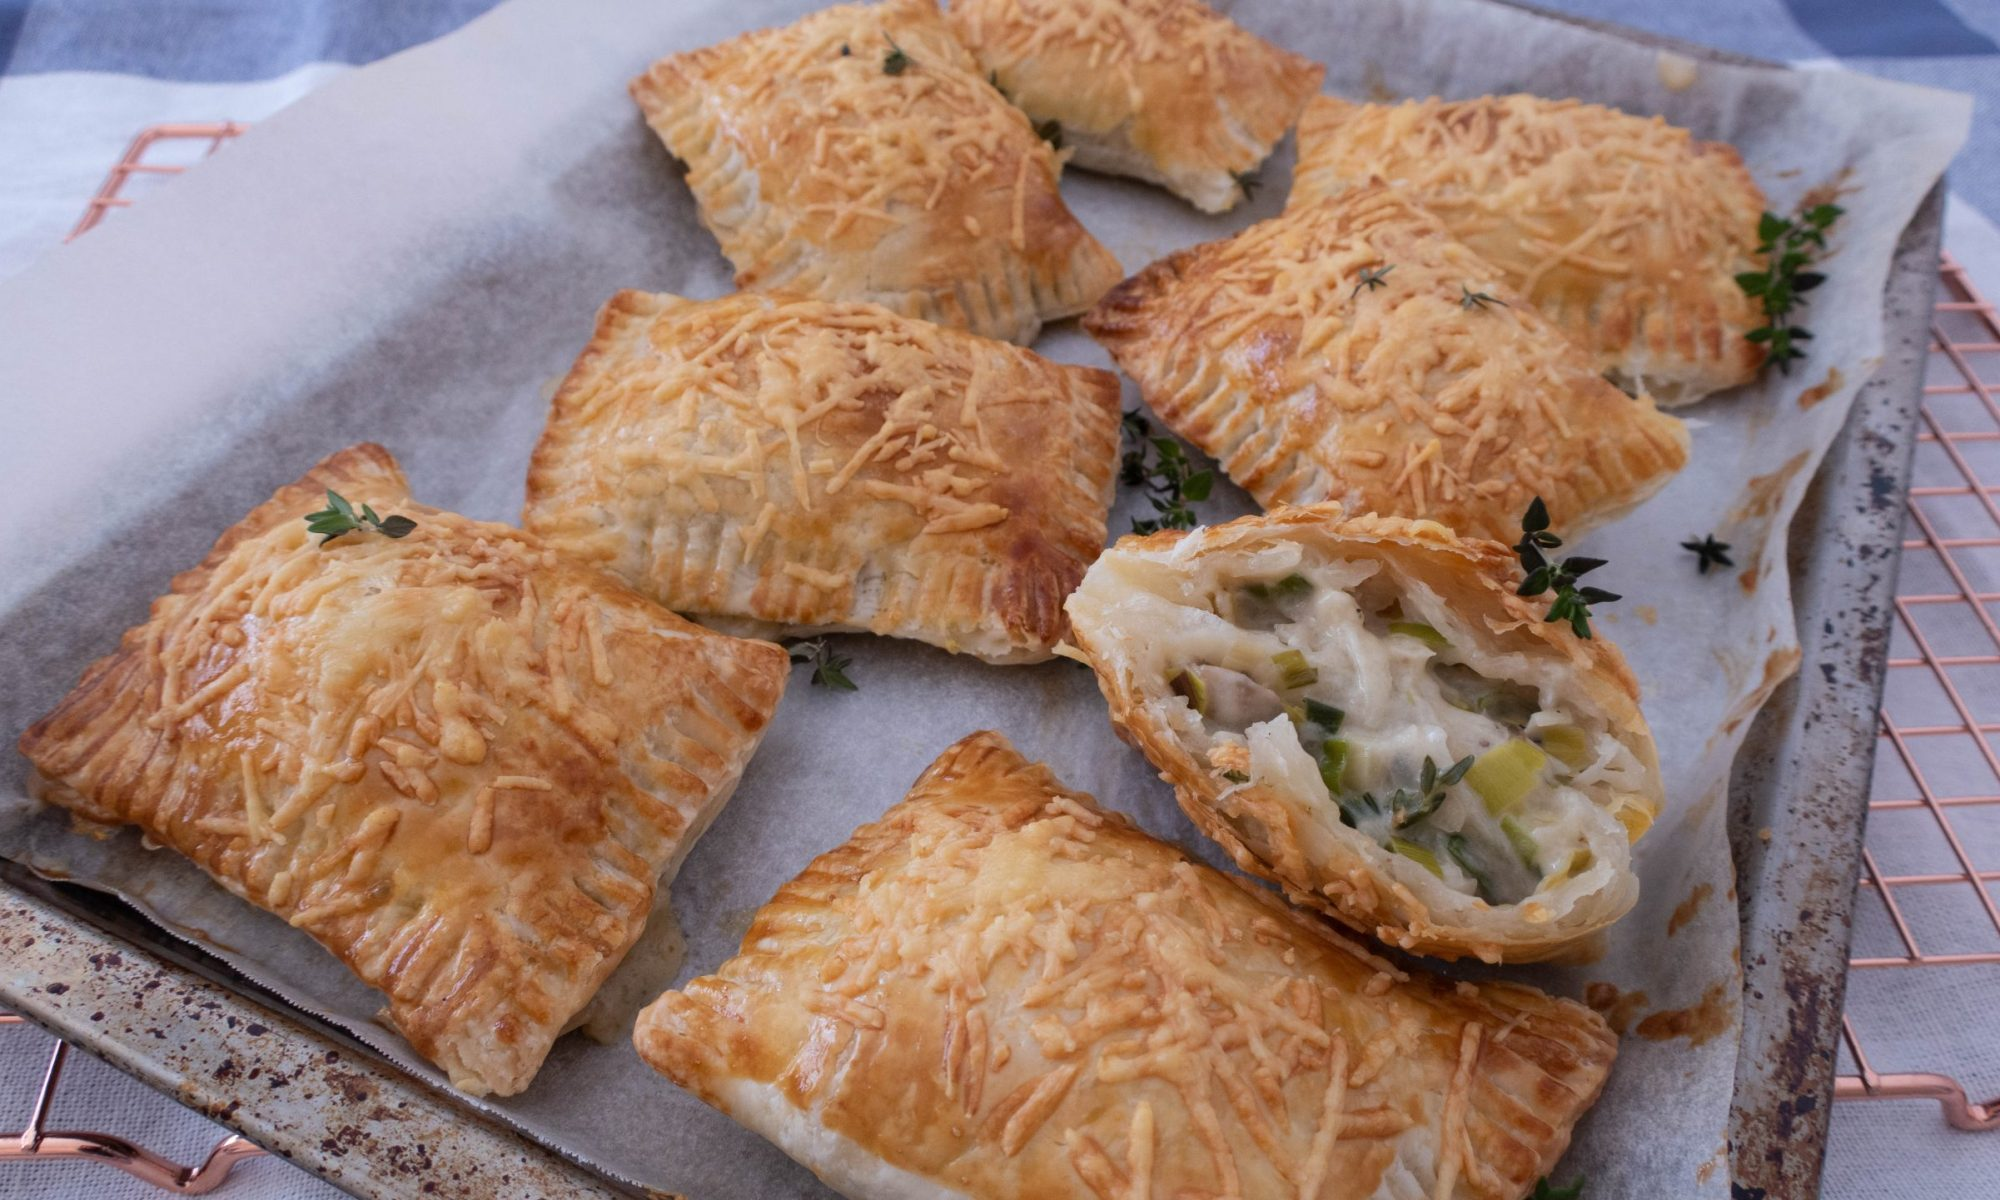 8 crispy golden brown mushroom and leek puff pastries in a baking tray and one of the pastry is cut in half to reveal the mushroom and leek stuffing inside